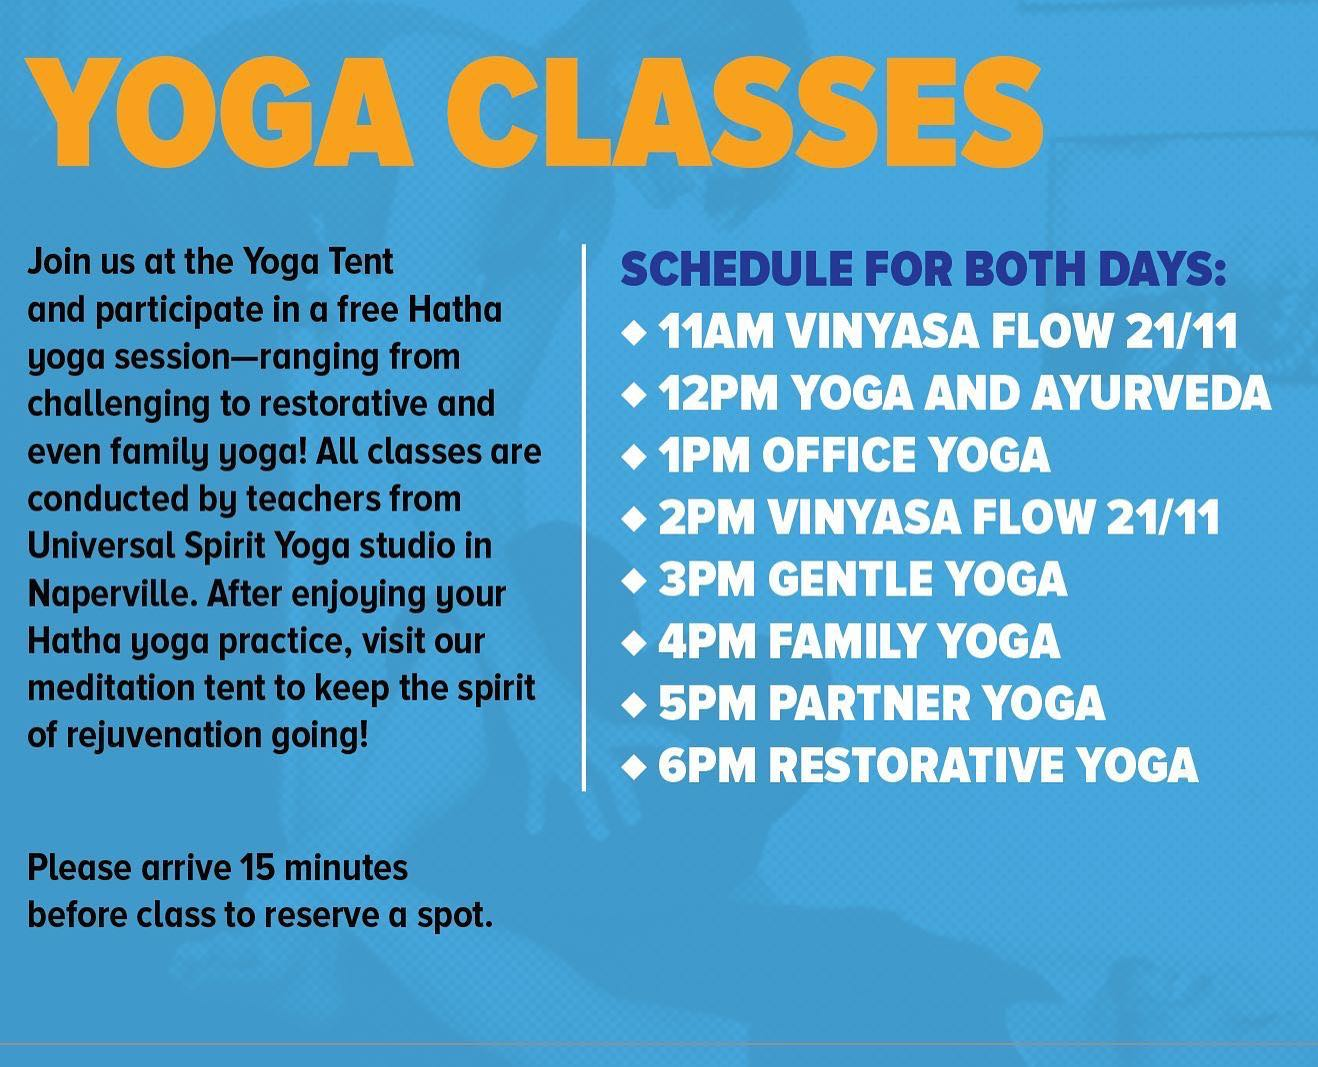 Veggie Fest free Yoga classes